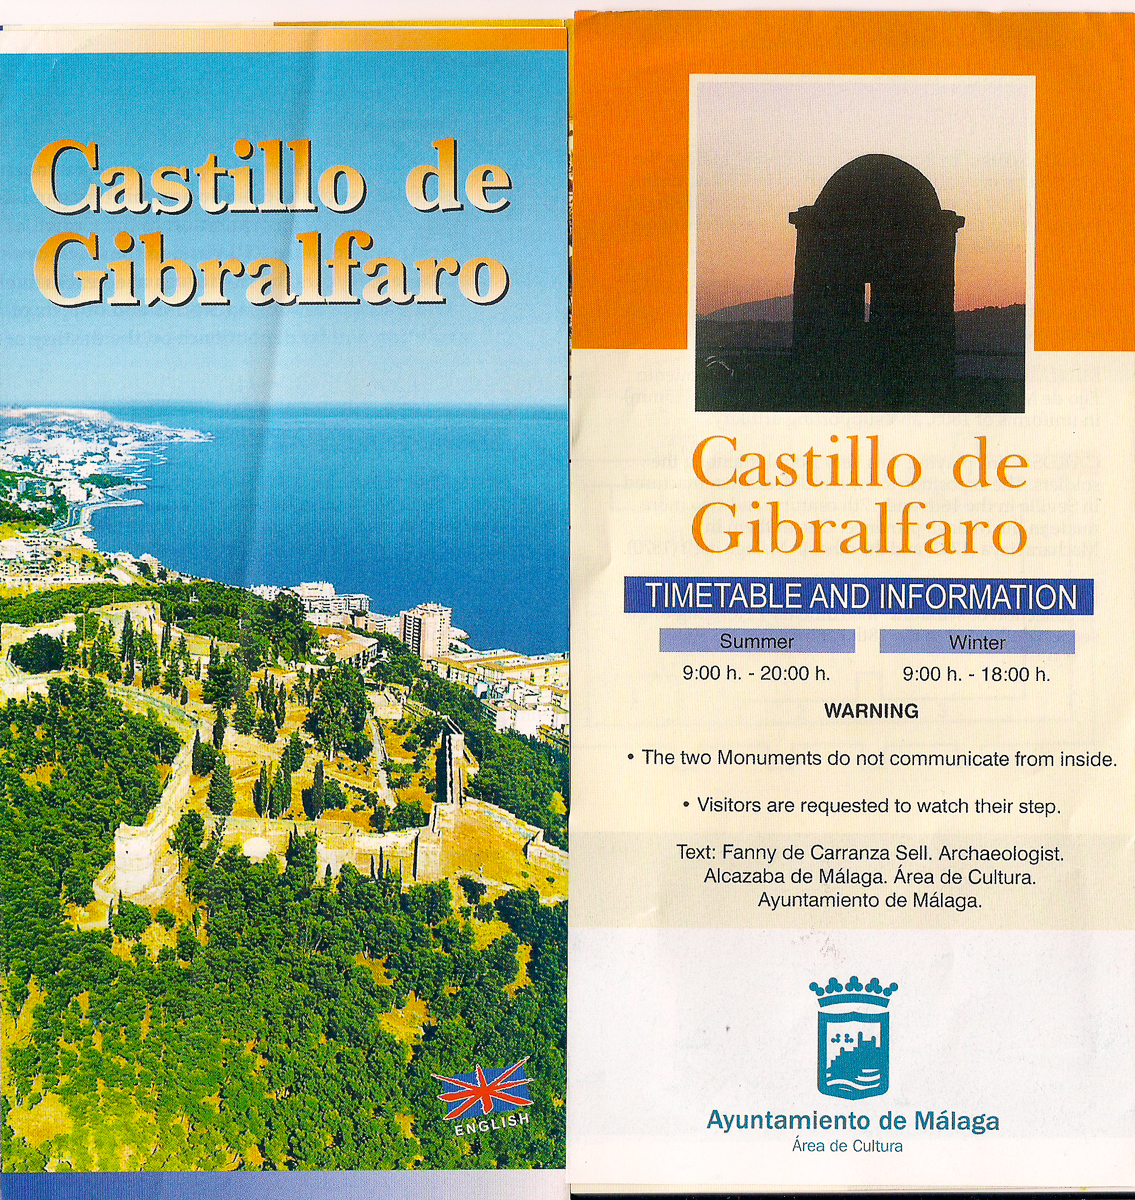 Flyer about the castle Gibralfaro